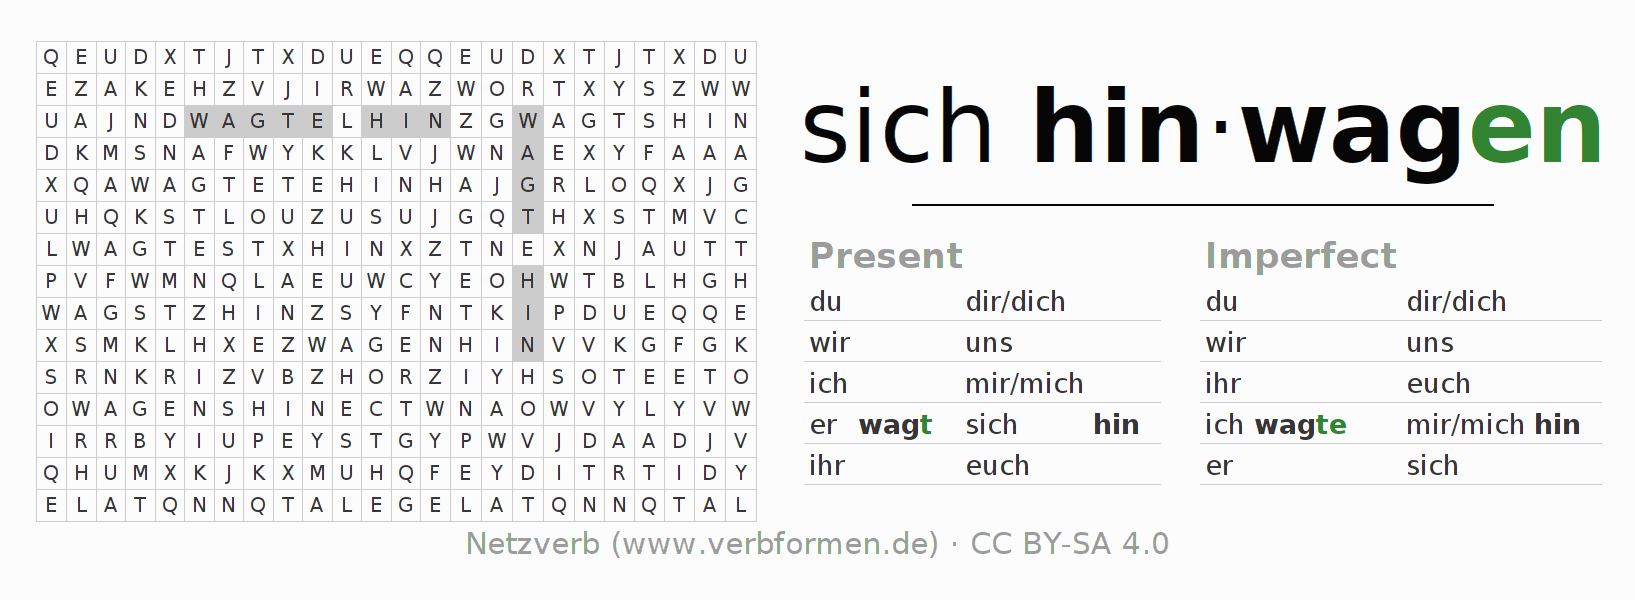 Word search puzzle for the conjugation of the verb sich hinwagen